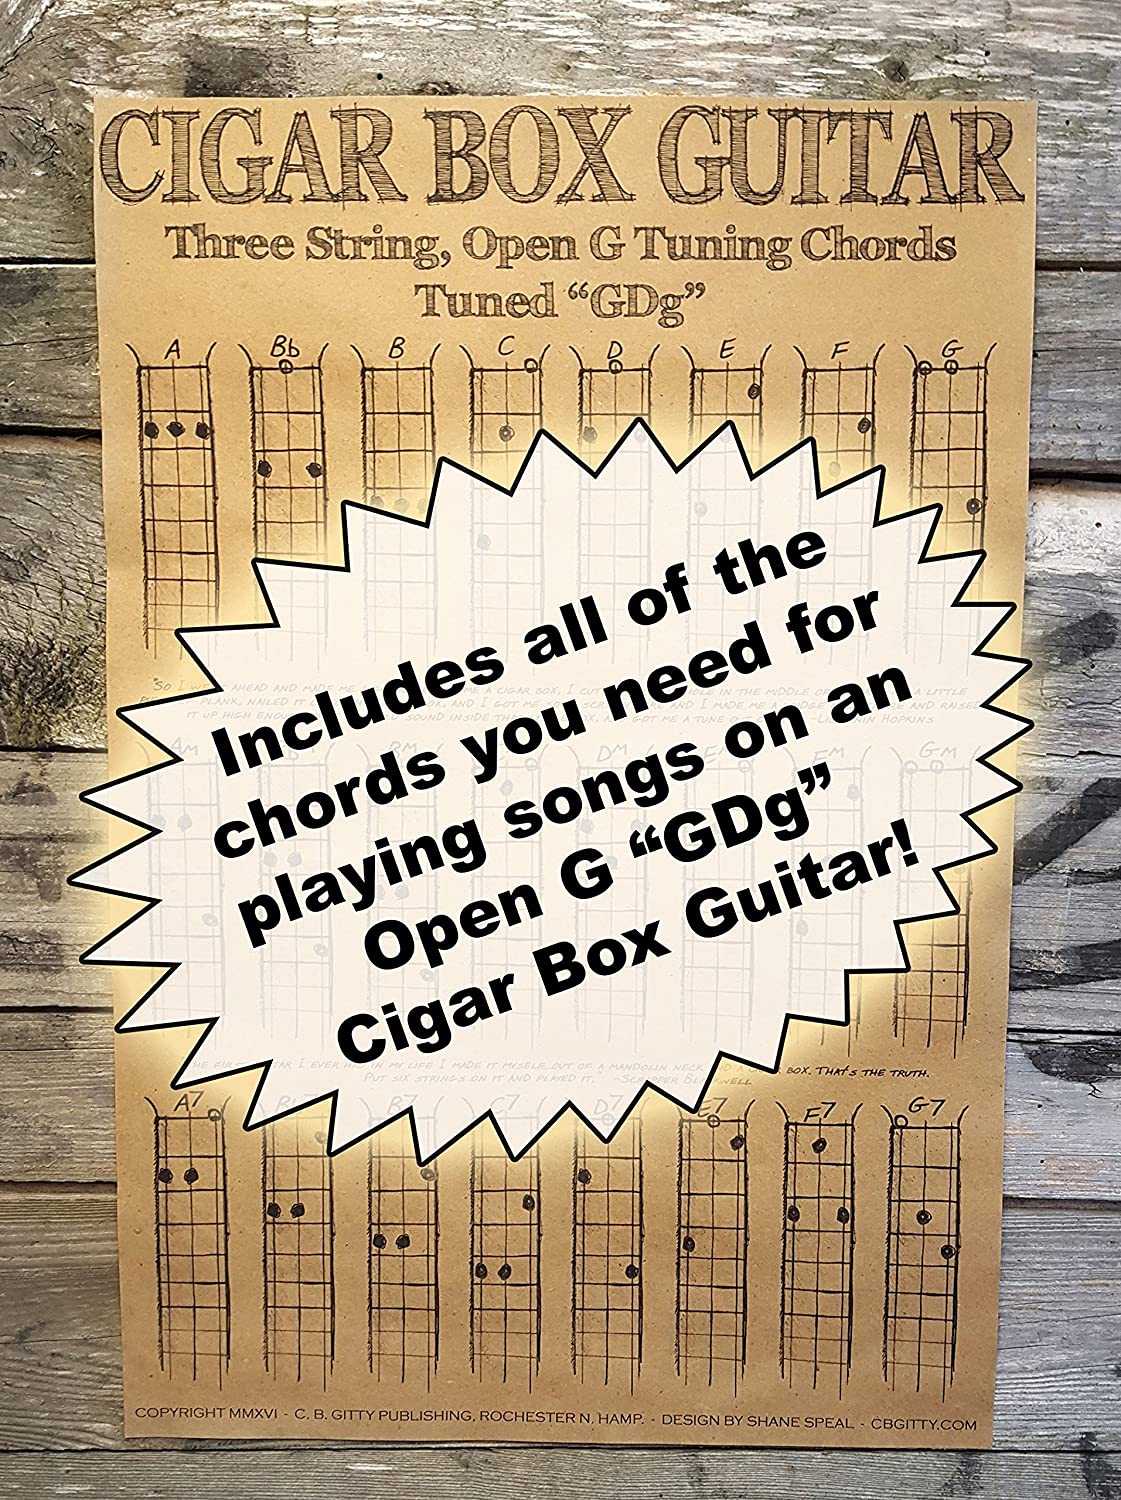 Chords Poster For 3 String Cigar Box Guitars All The Most Popular Chords For Open G Gdg Tuning